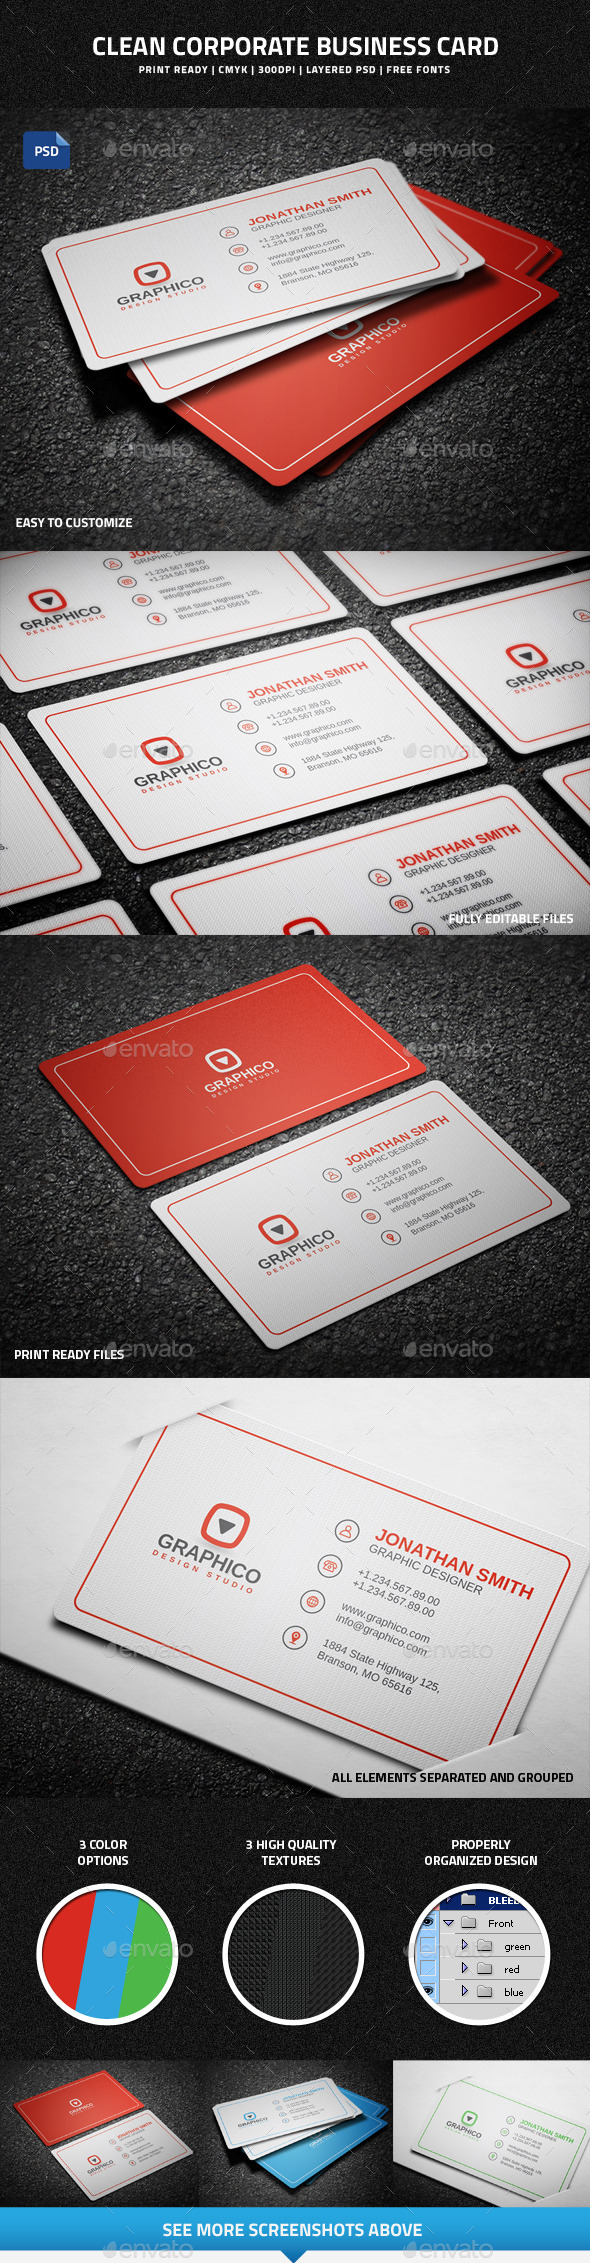 Clean Corporate Business Card - 48 - Corporate Business Cards